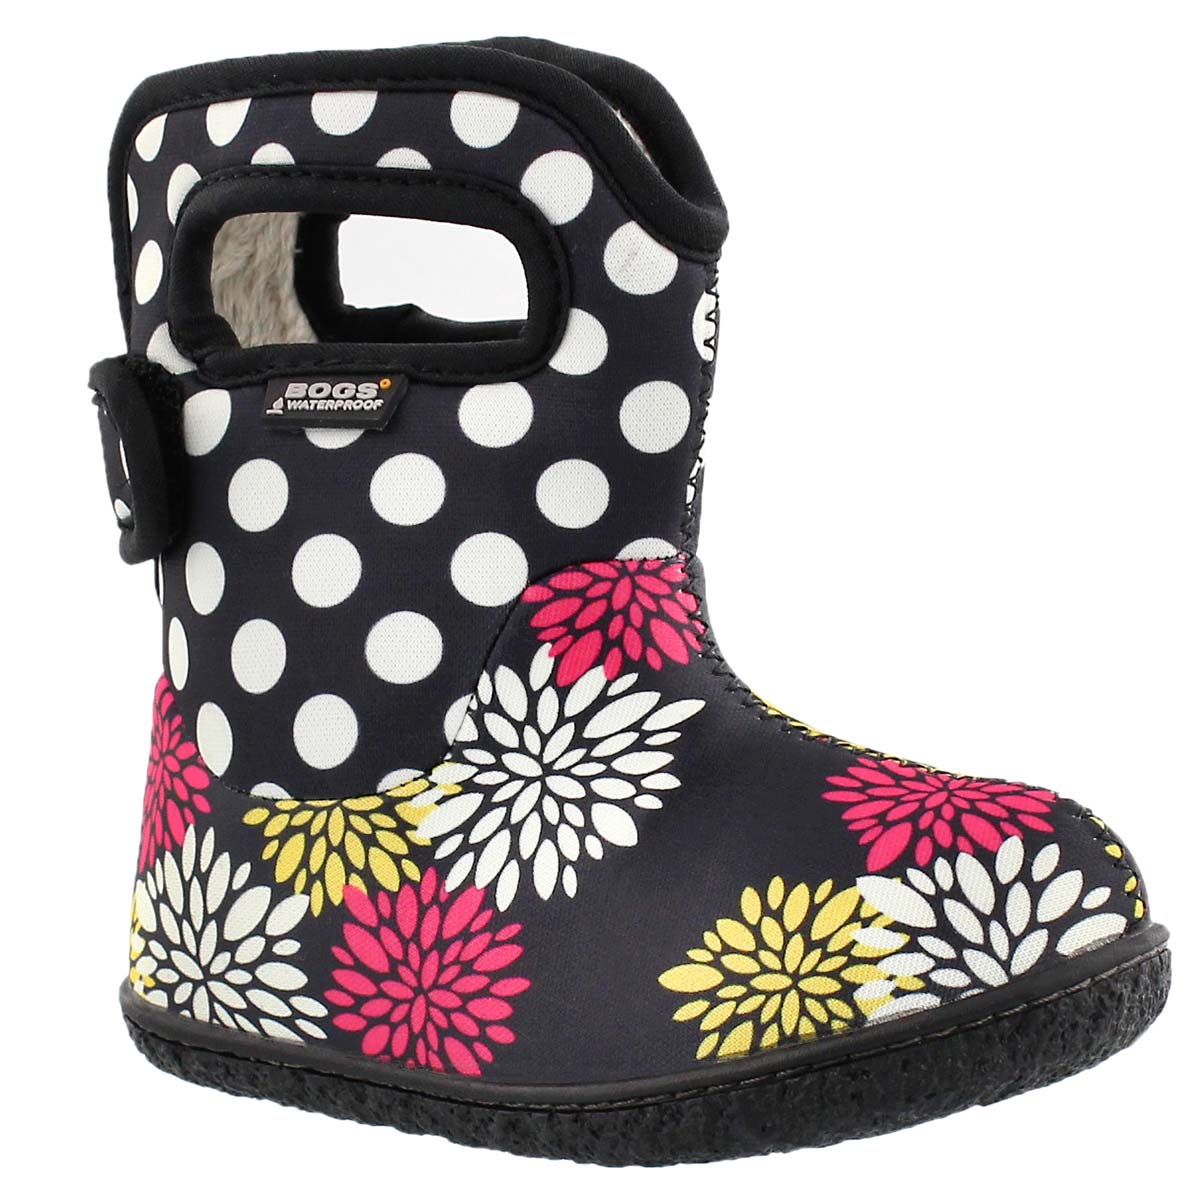 Infants' CLASSIC POMPON DOTS blk waterproof boots